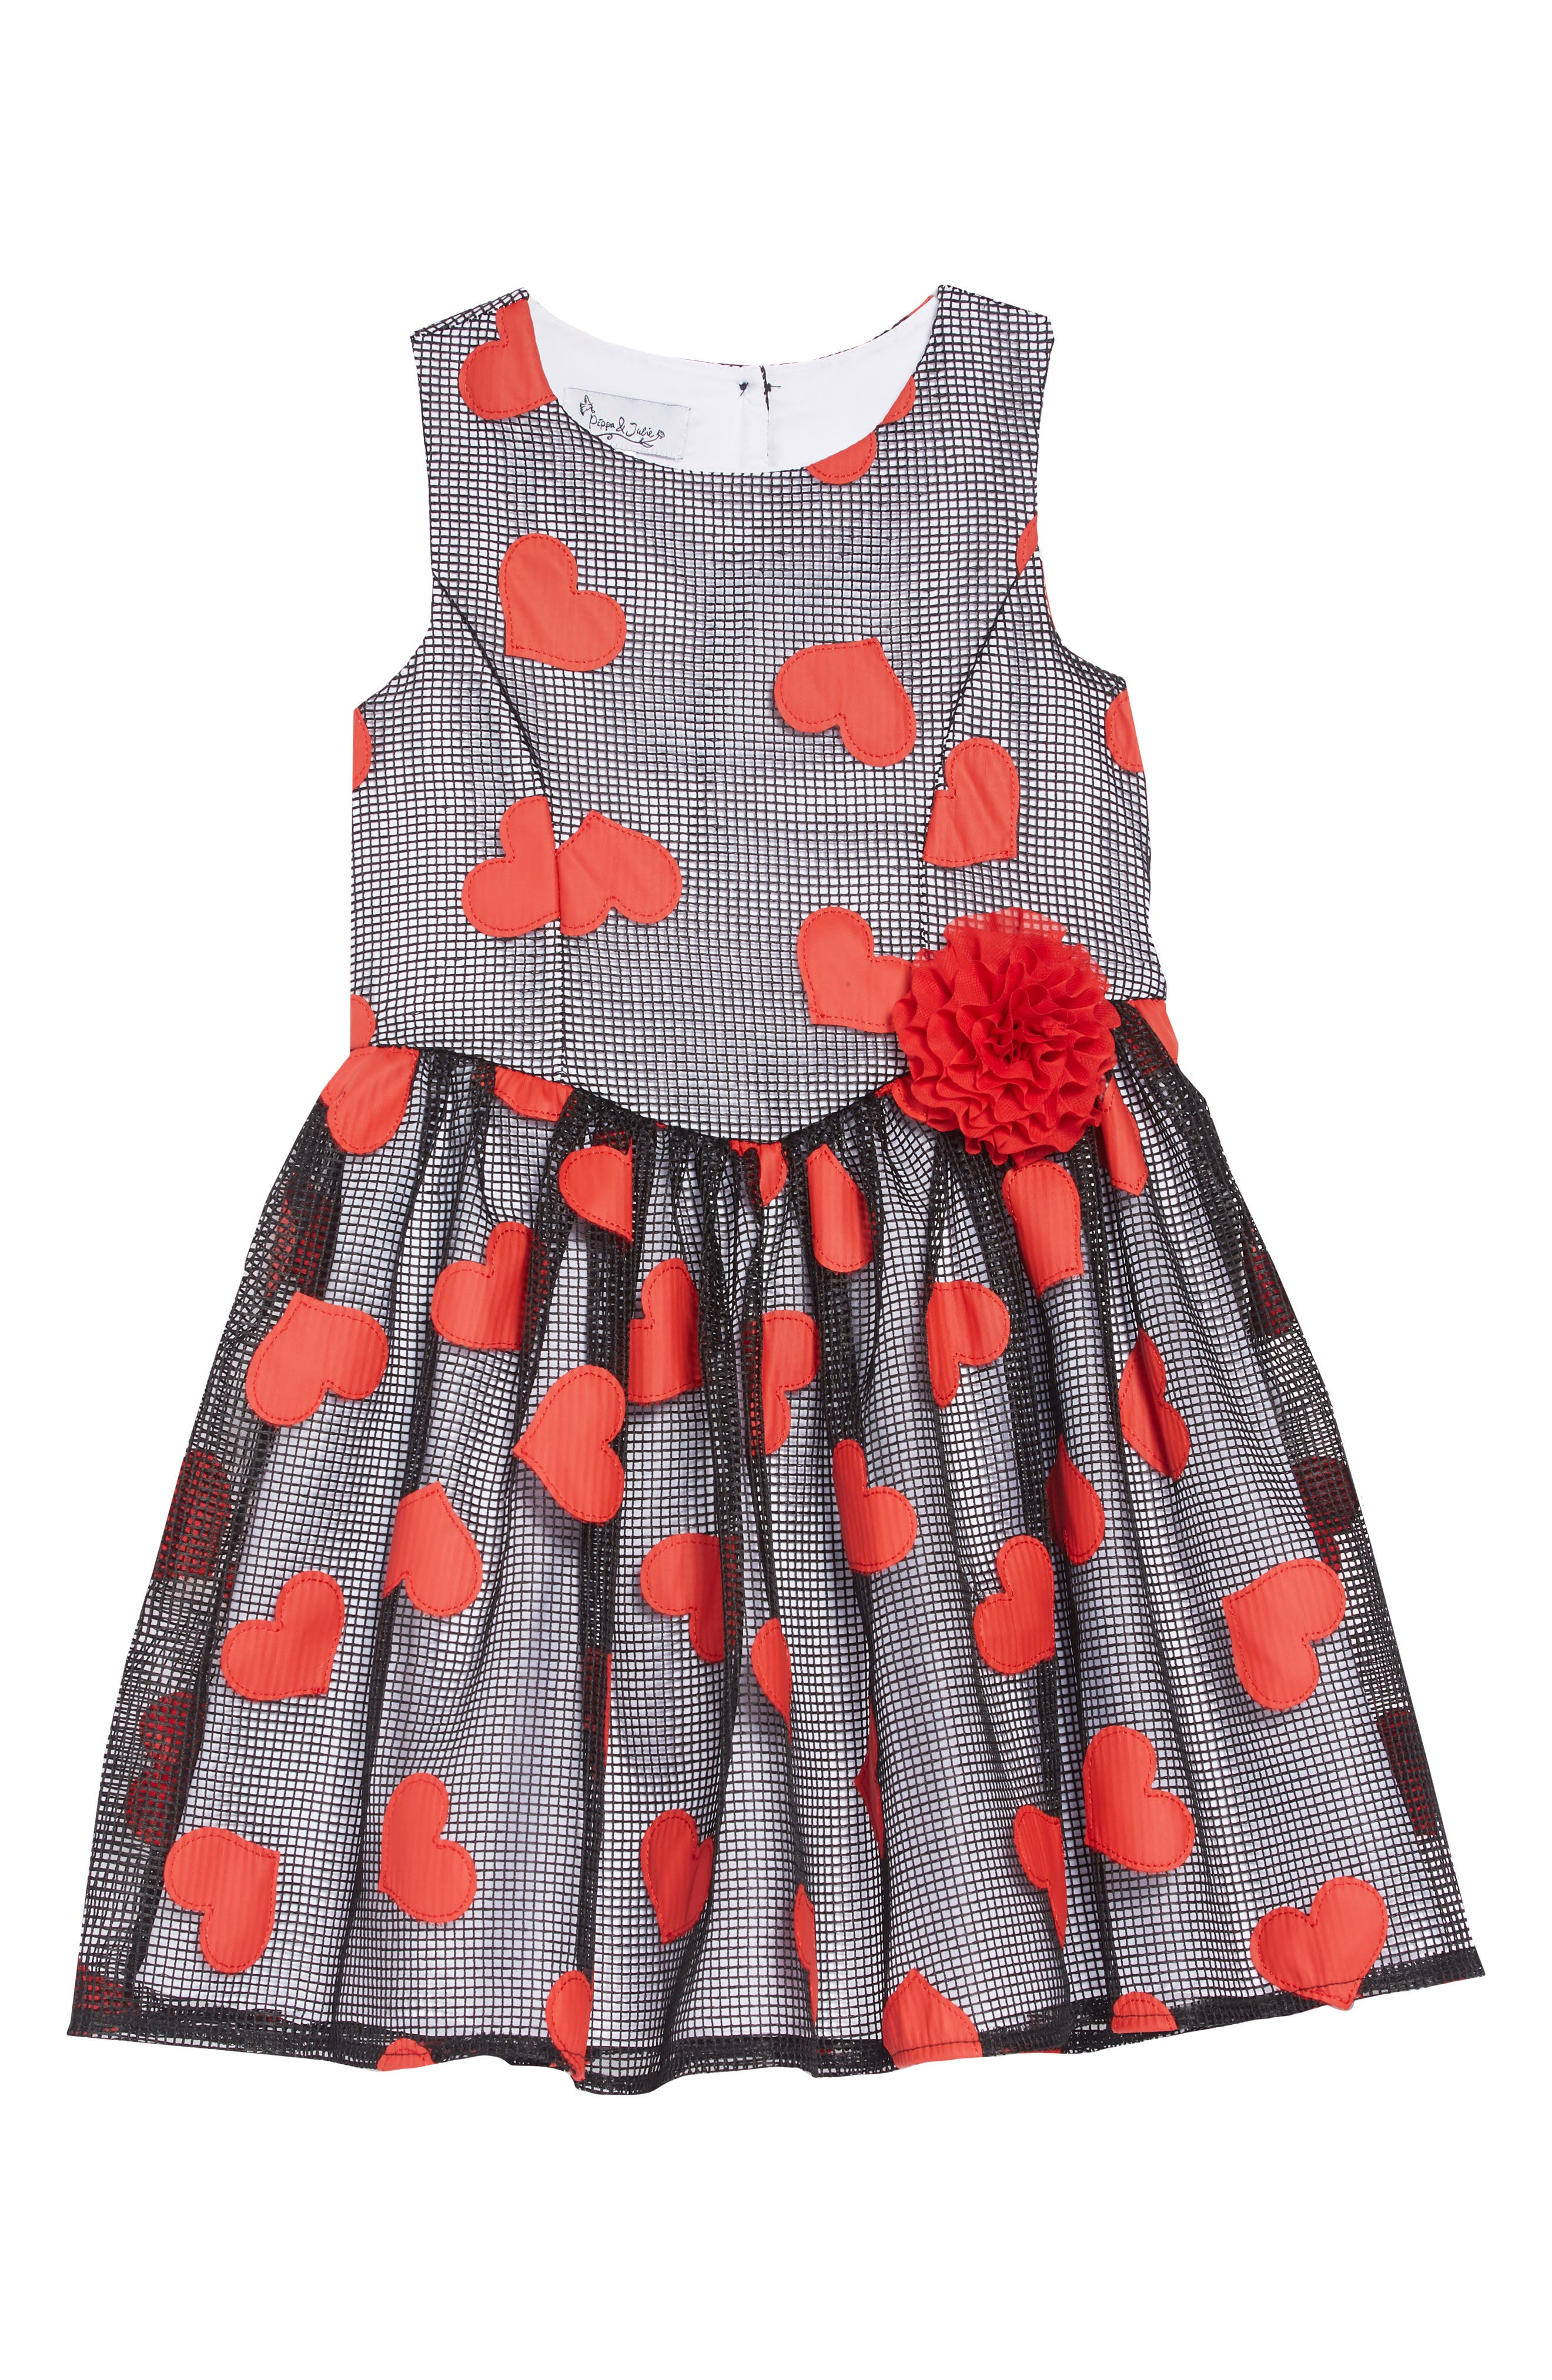 Toddler Girls Pippa  Julie Heart Applique Mesh Party Dress Size 3T  Black